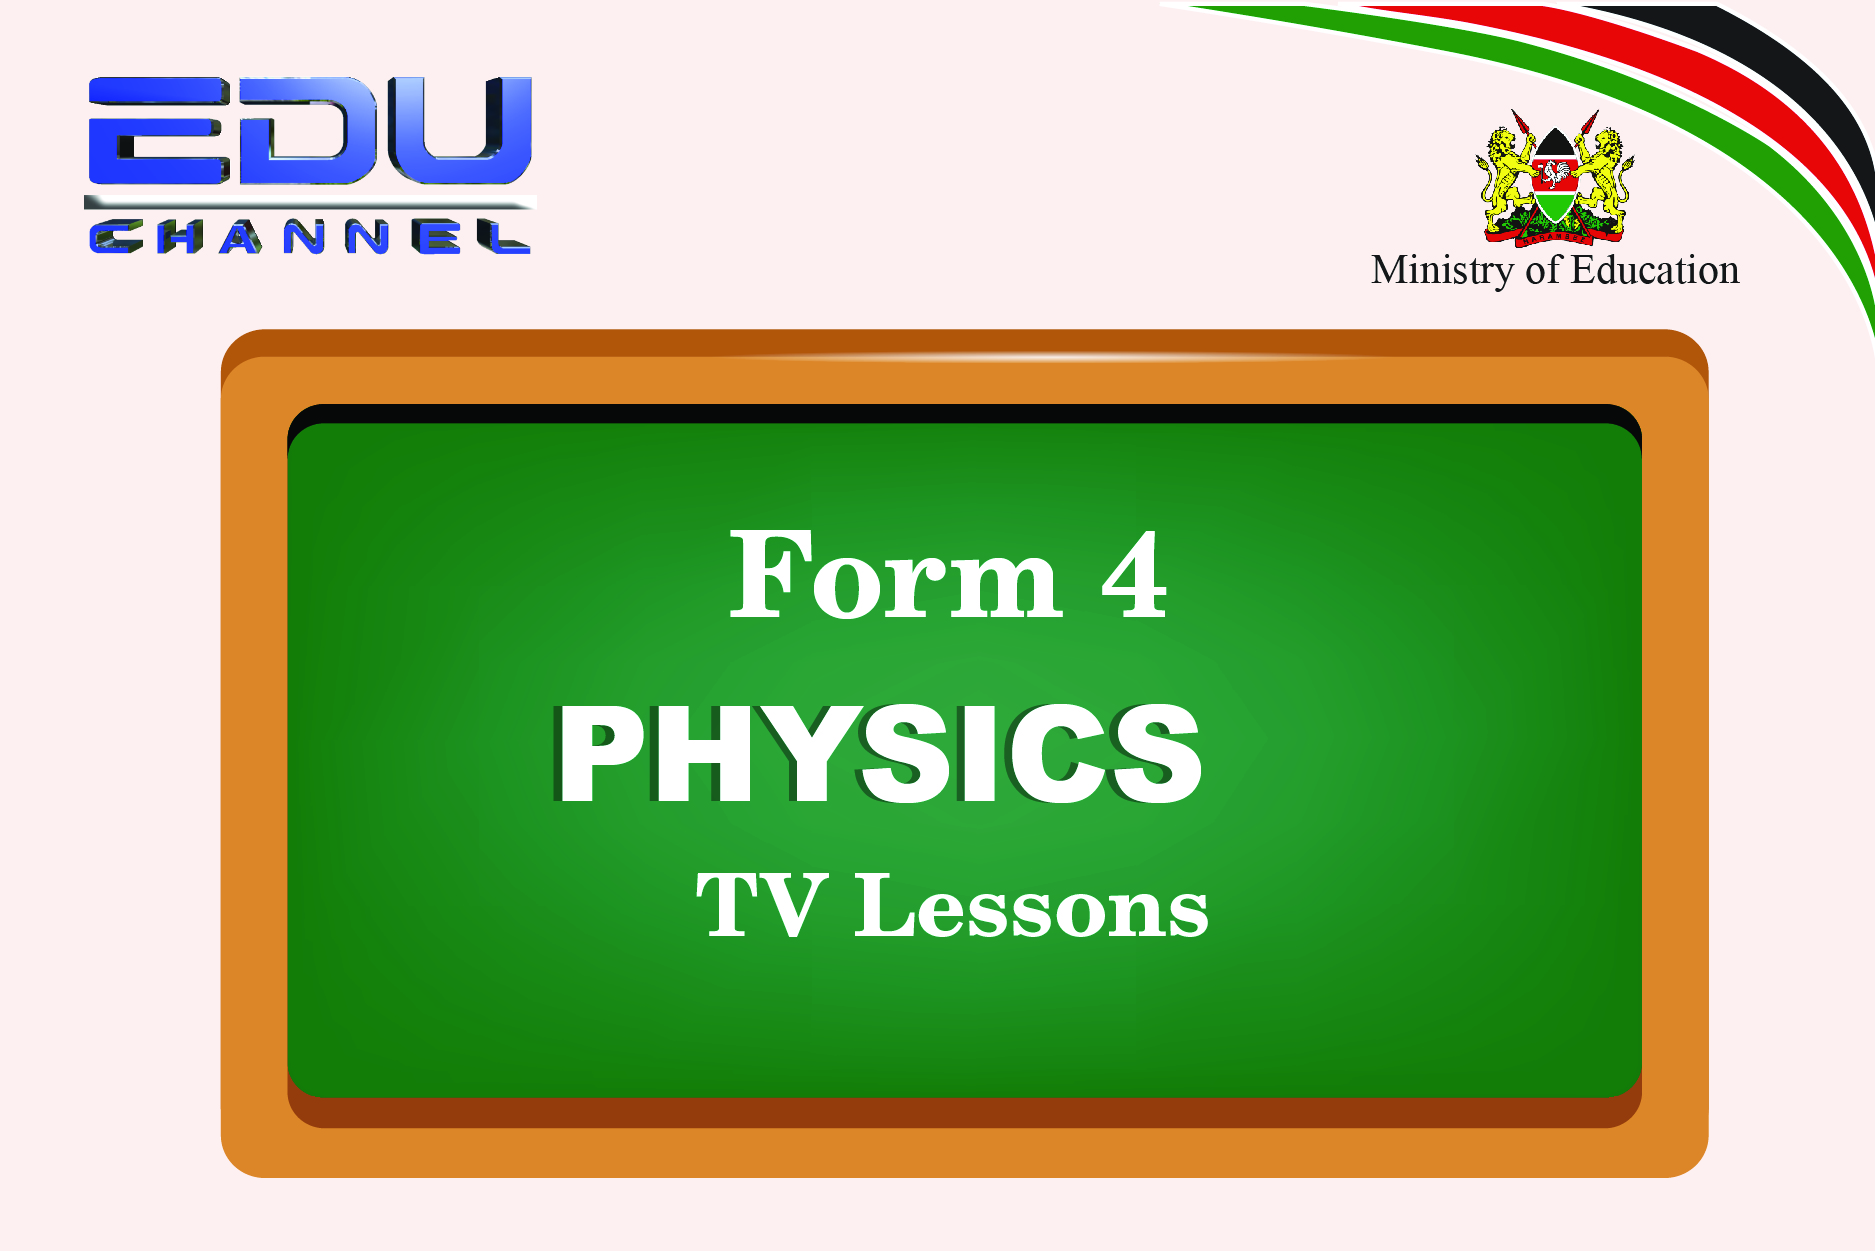 Form 4 physics Lesson 11: Cathode  rays - Uses of Cathode rays